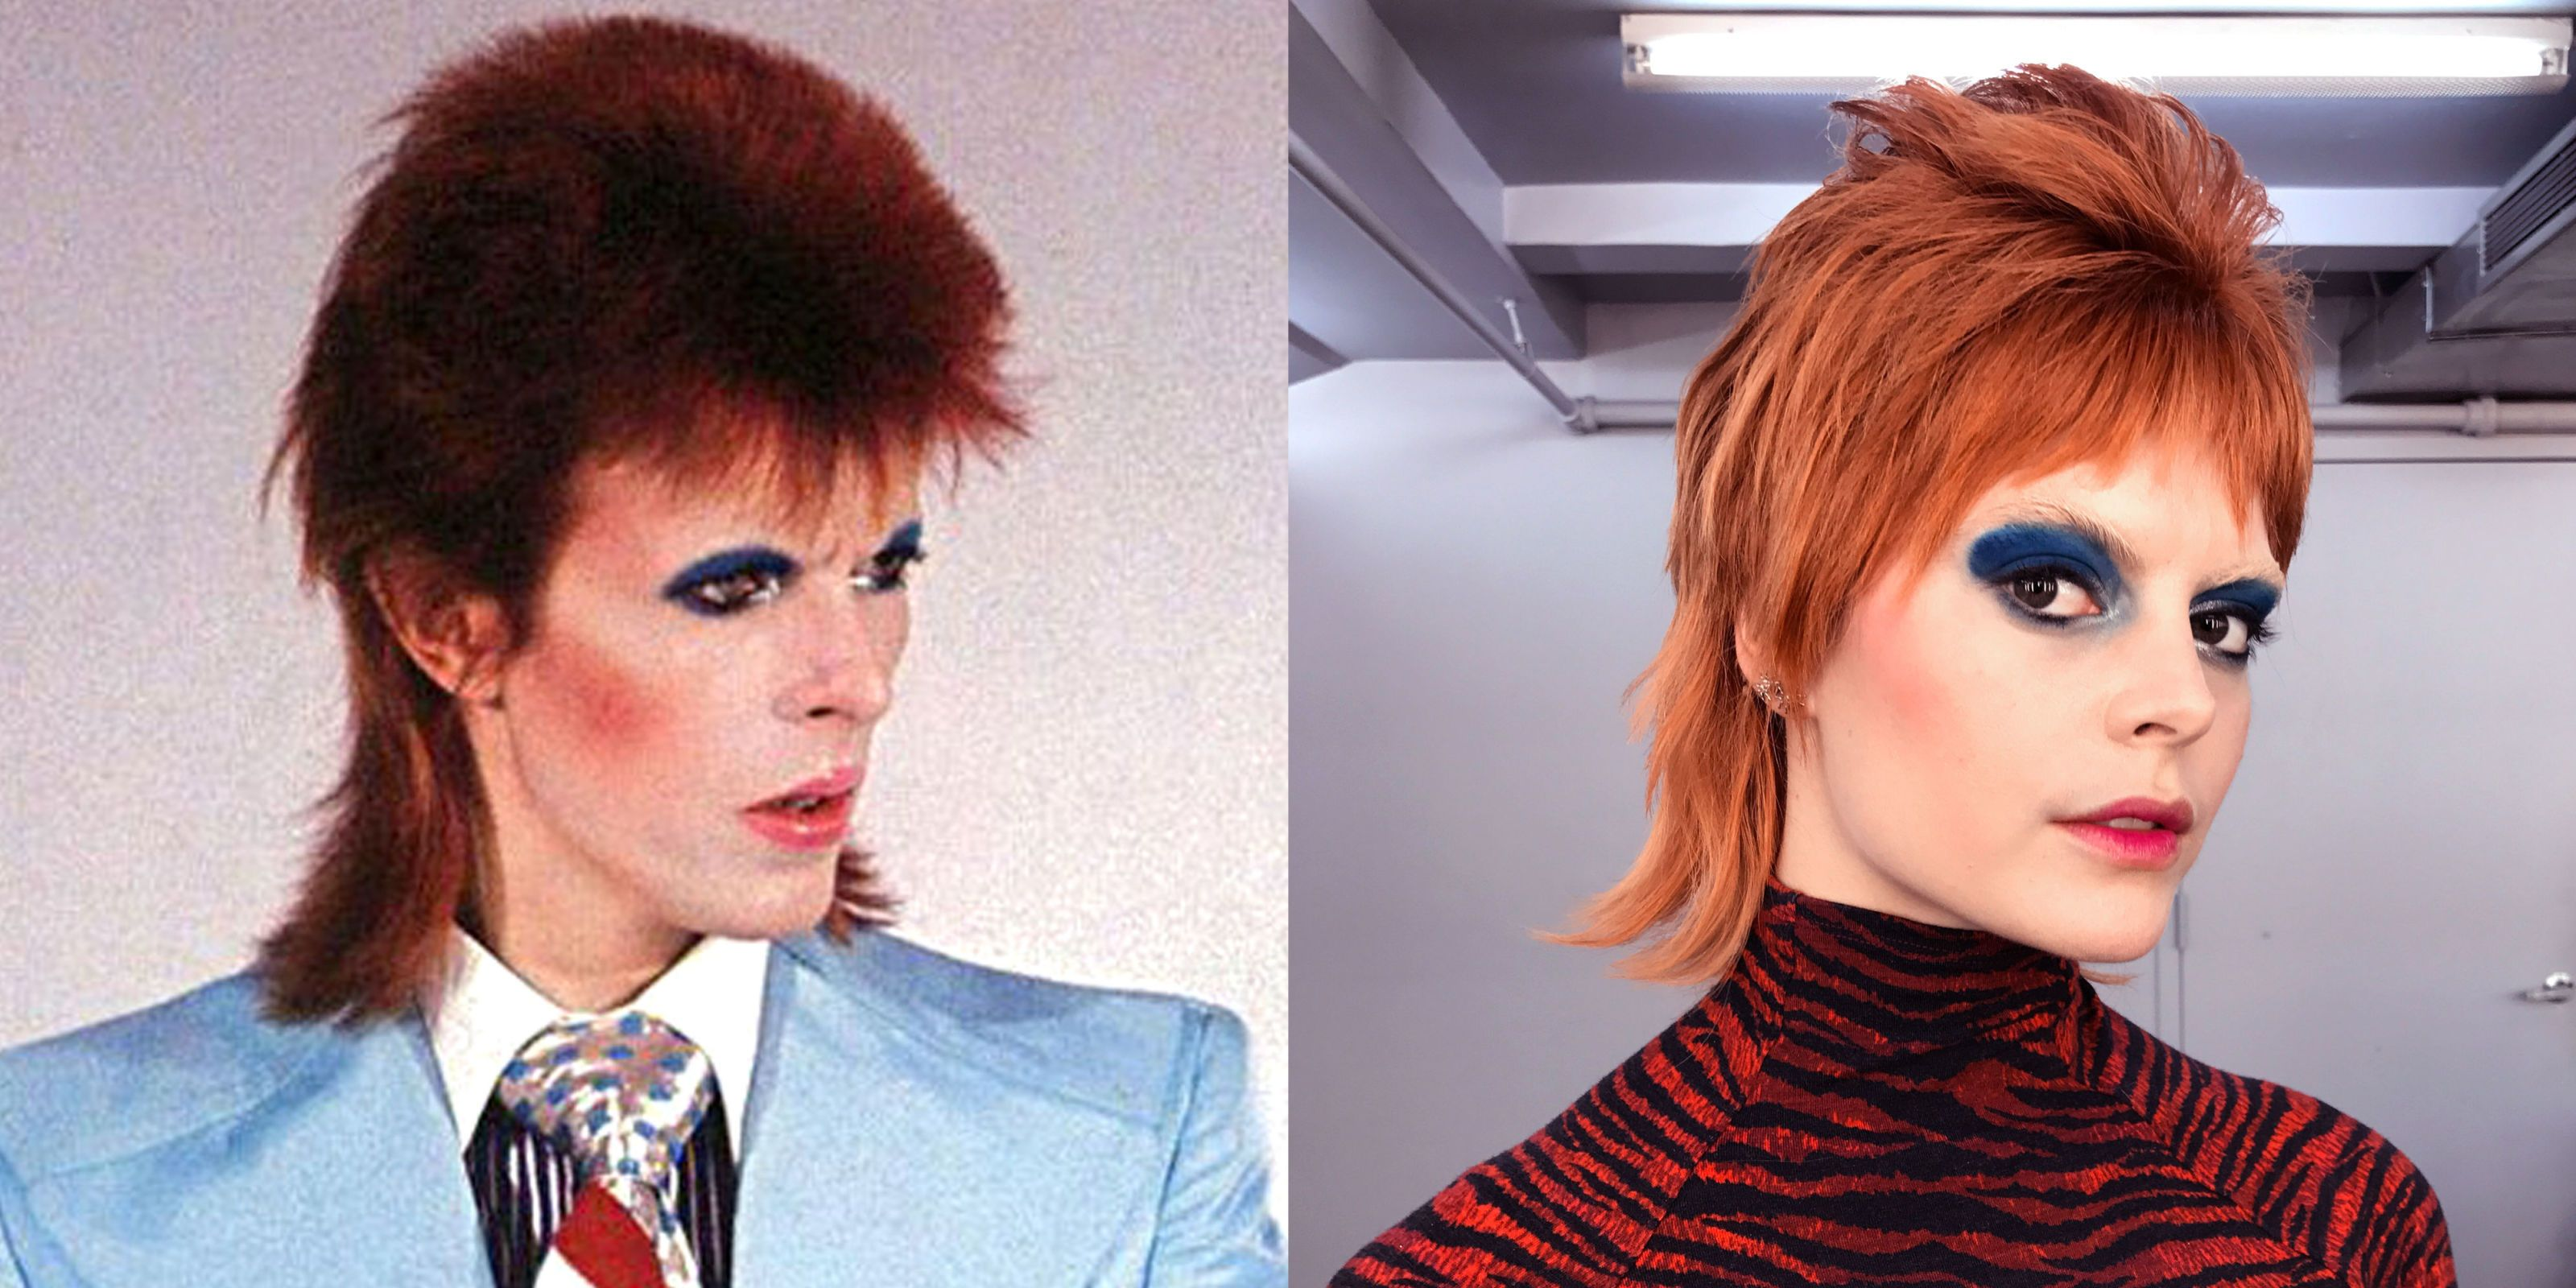 No matter what incarnation dressing up as David Bowie is all or nothing. You donu0027t half-ass Starman. The devil is always in the celestial details.  sc 1 st  Marie Claire & How to Dress Like David Bowie for Halloween - David Bowie Costume ...